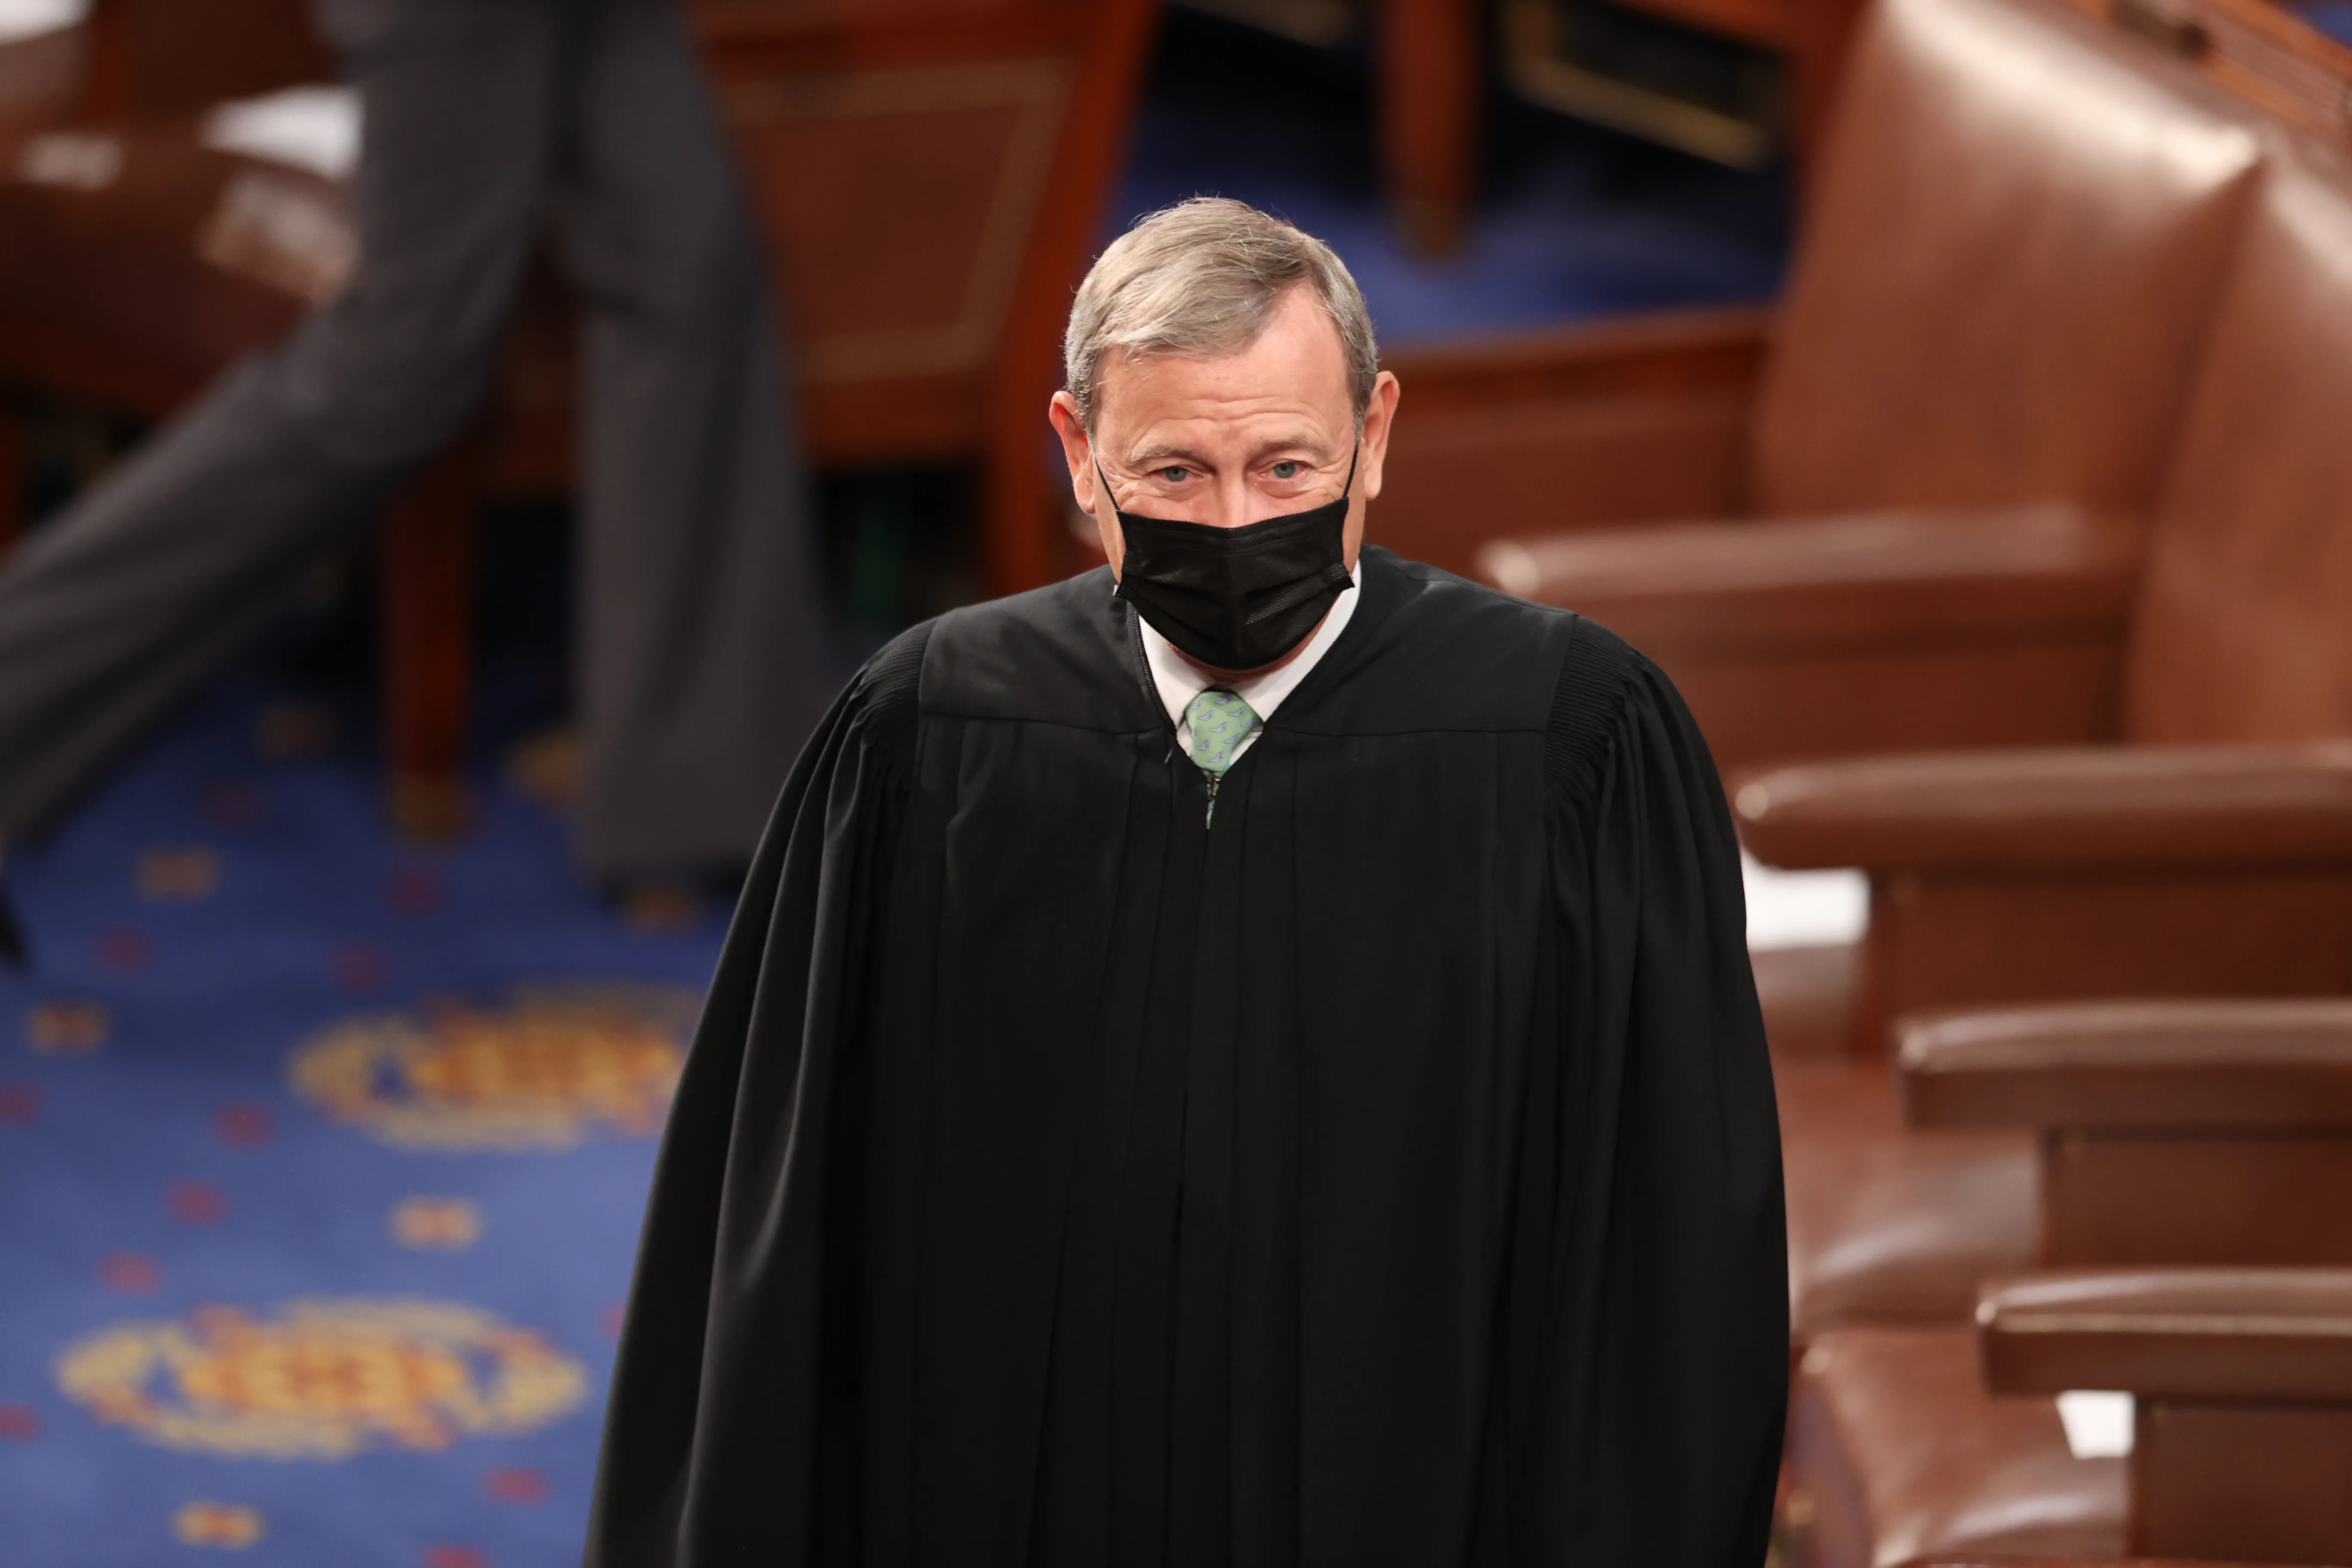 Supreme Court observers said Chief Justice John Roberts tried to keep partisan temperatures low.